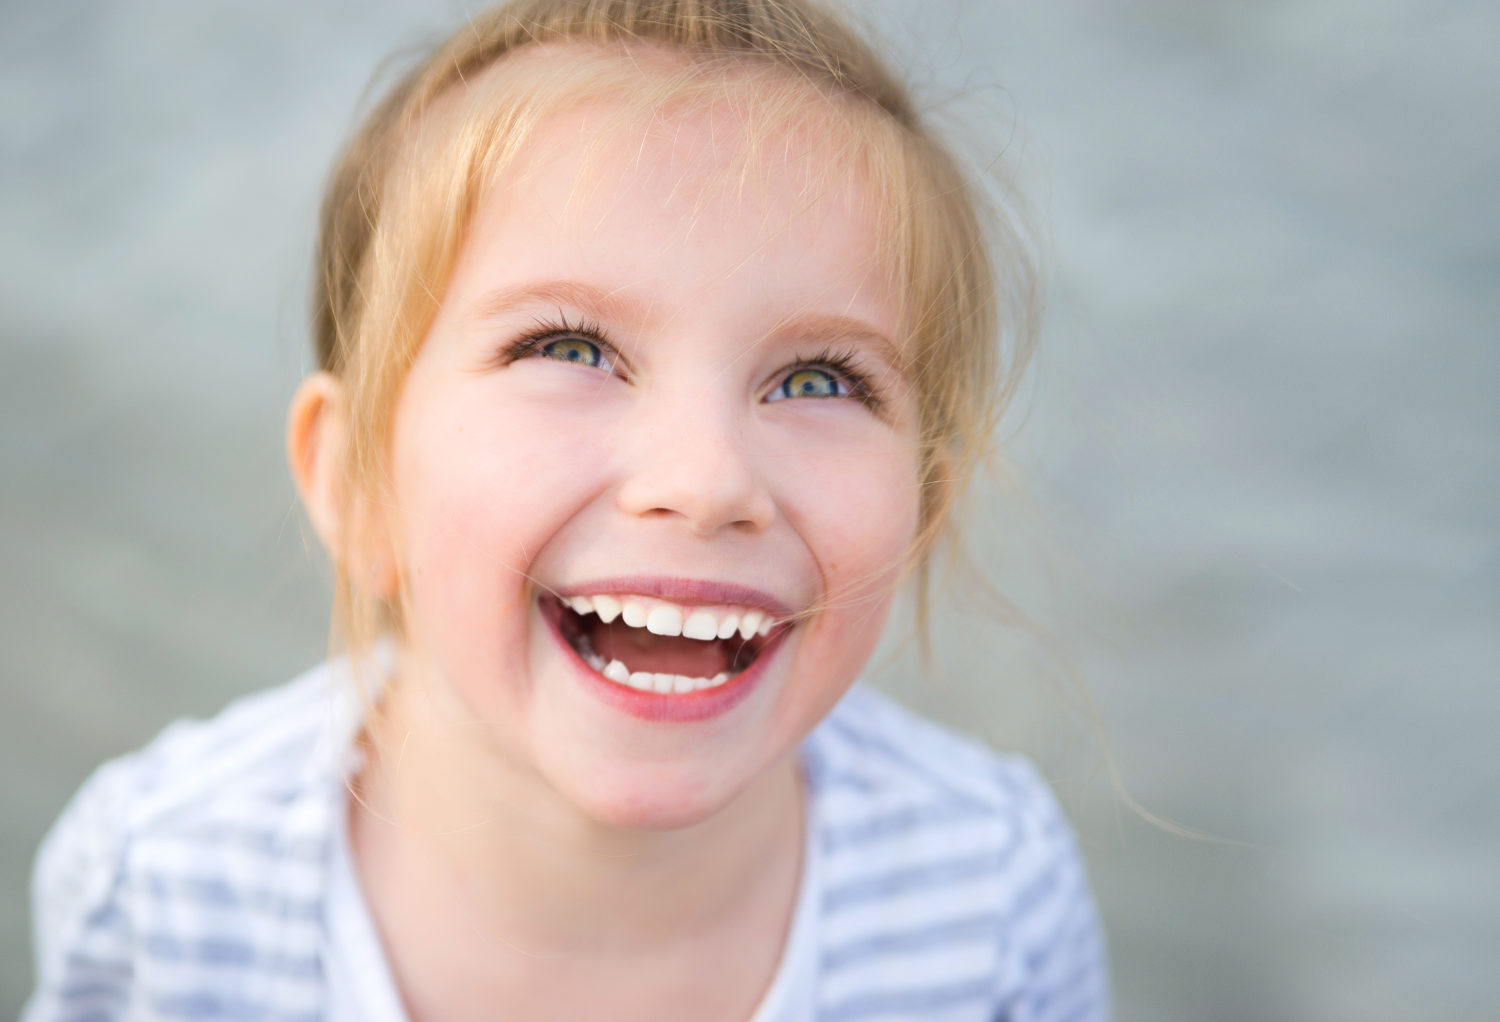 5-ways-to-get-genuine-laughs-and-smiles-out-of-child-clients